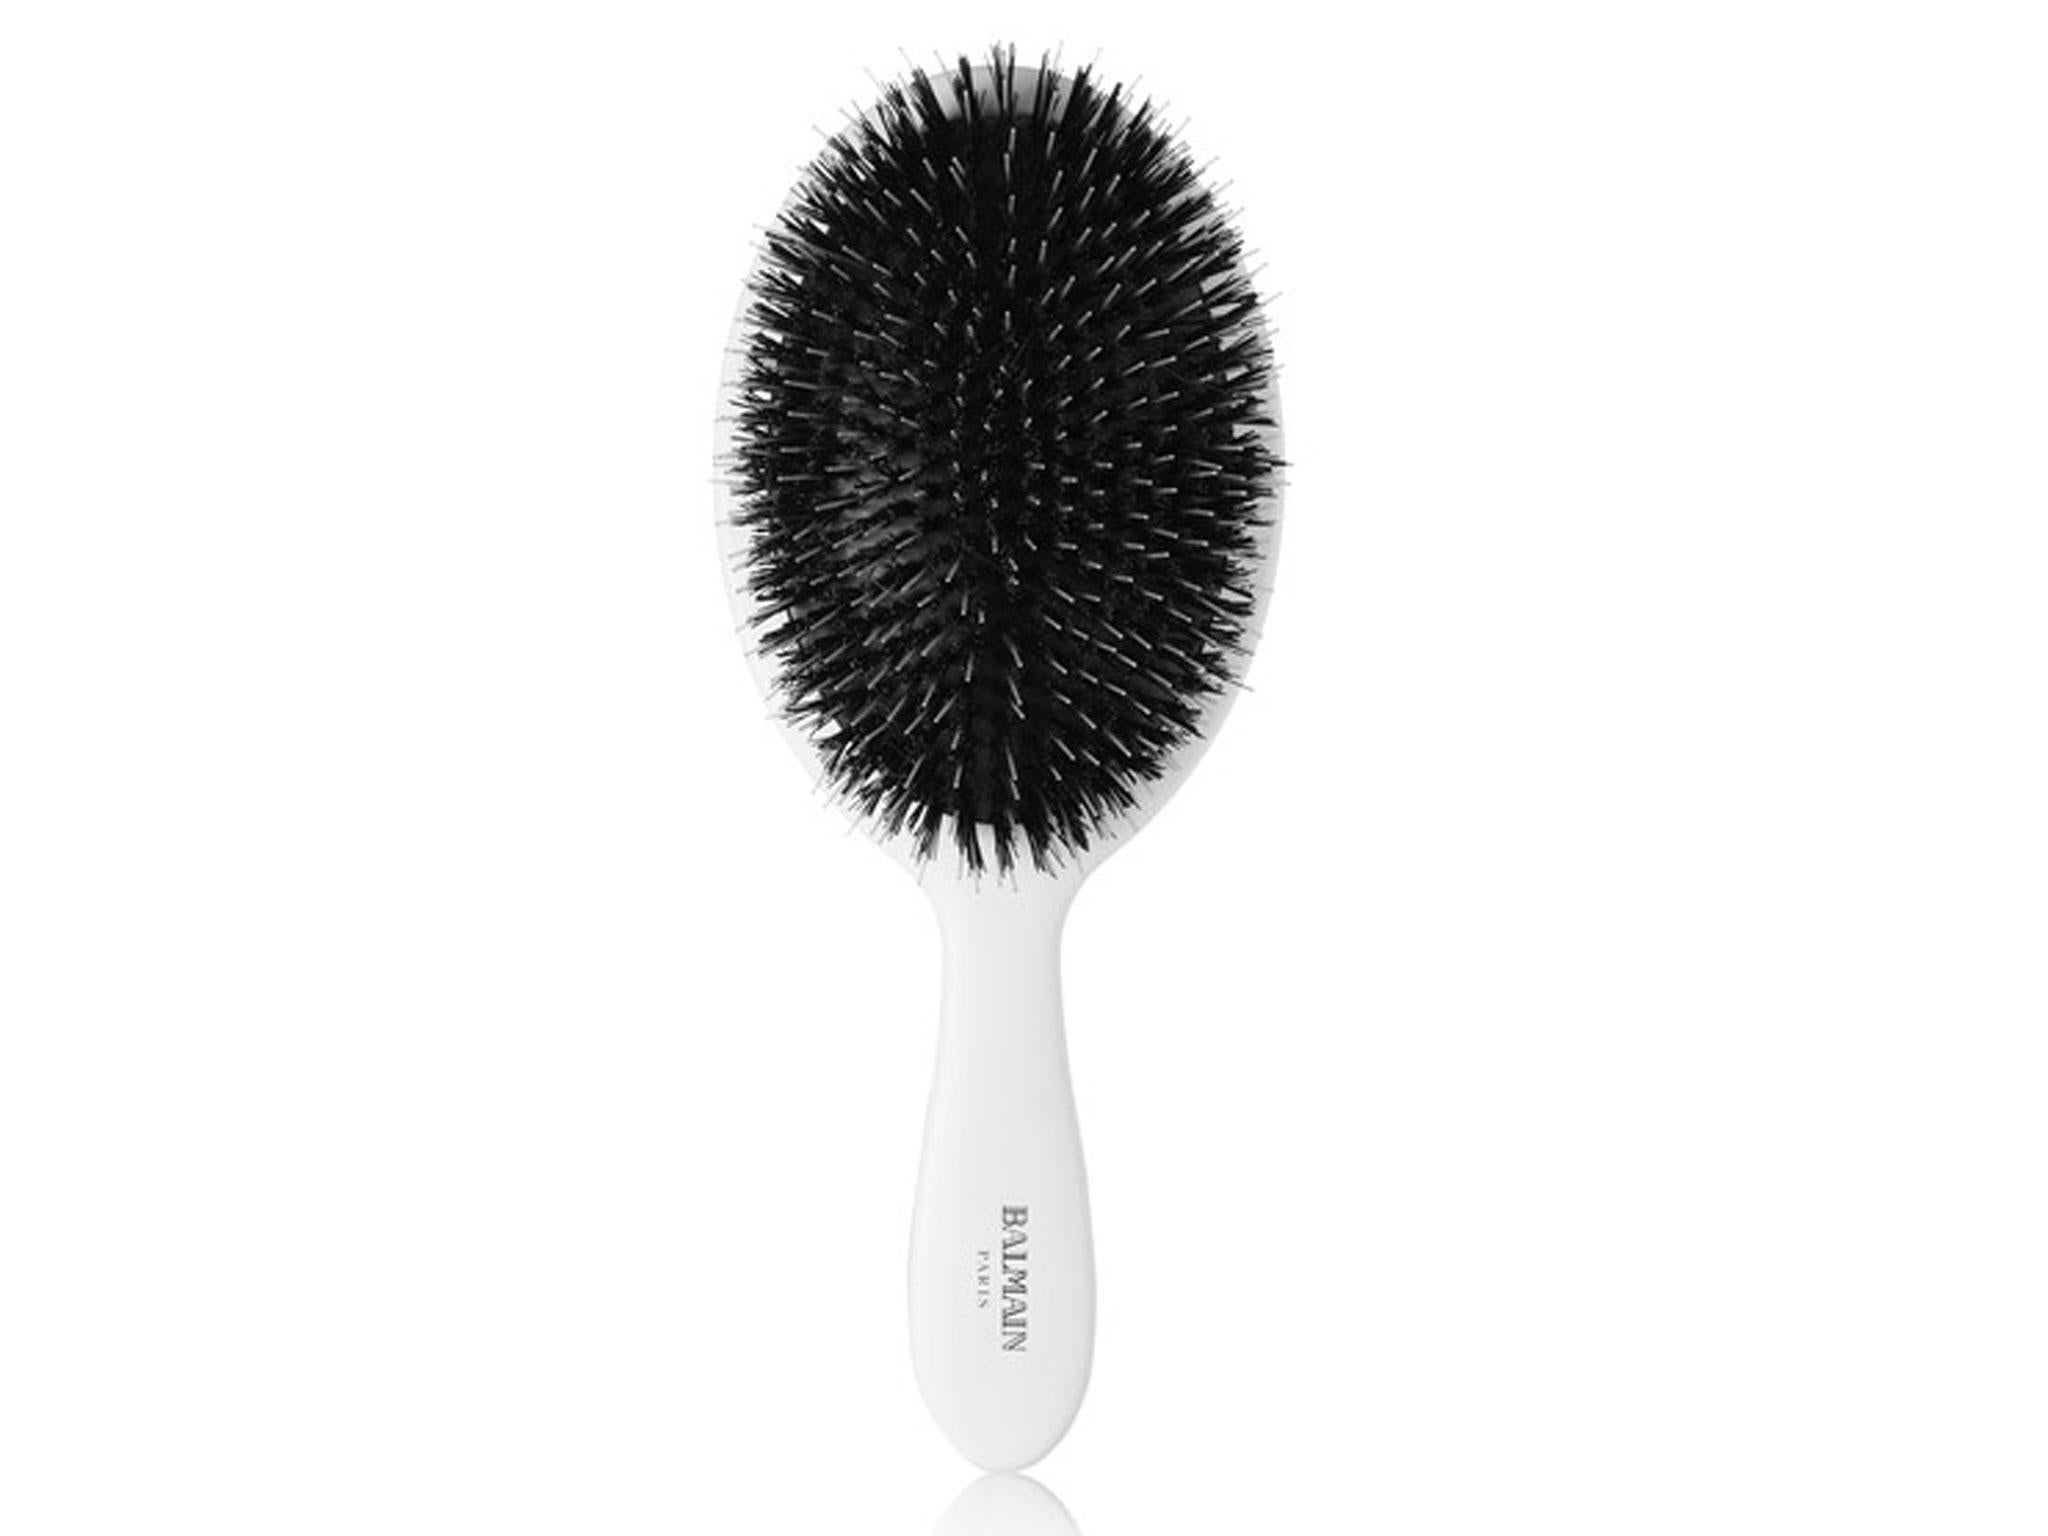 10 Best Hairbrushes The Independent